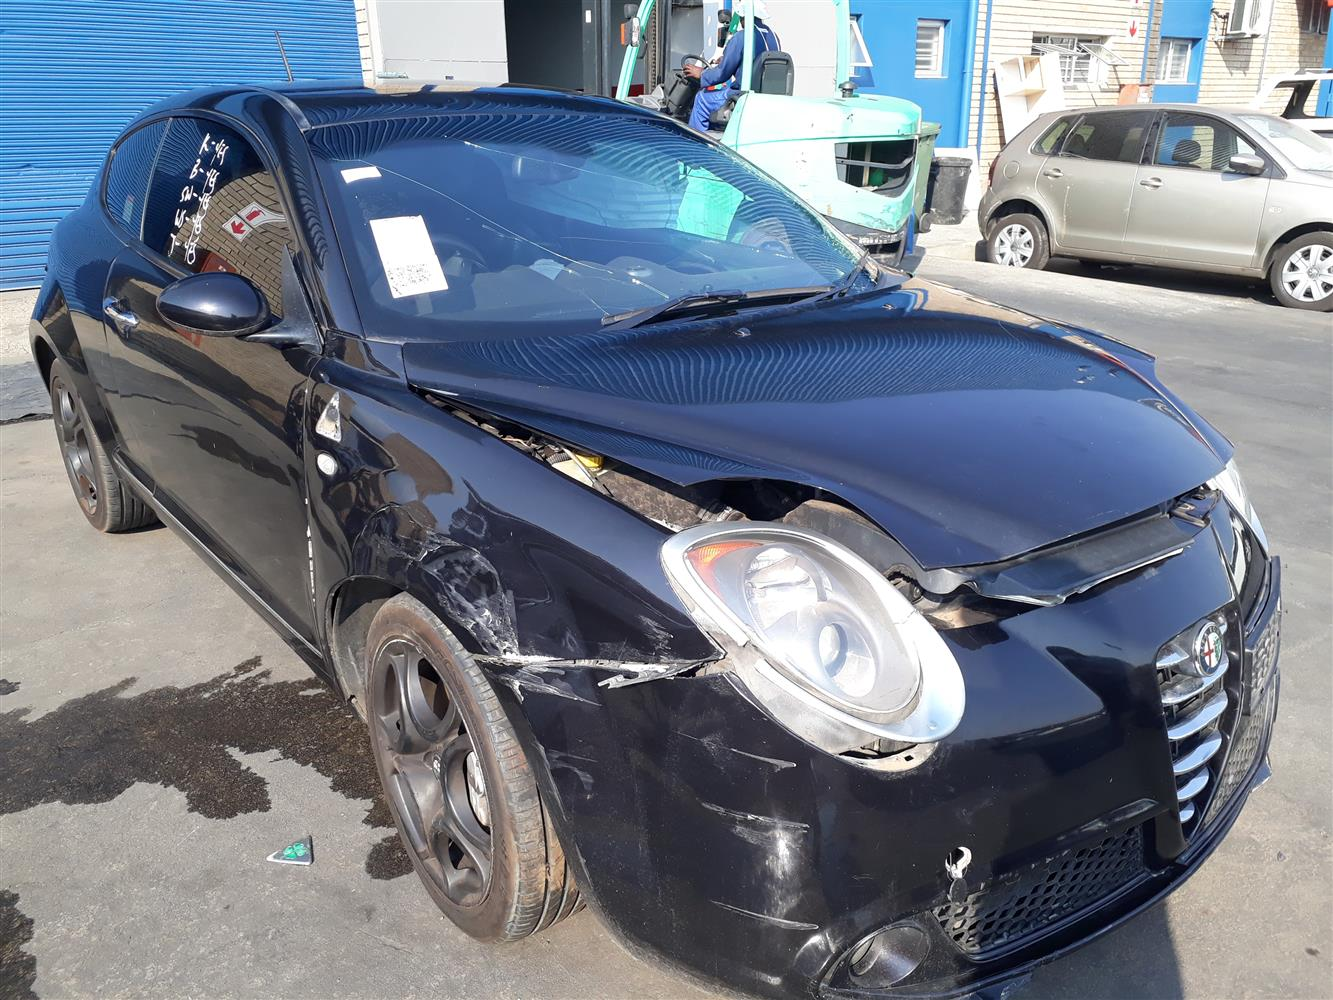 2012 Alfa Romeo Mito Accident Damaged For Sale